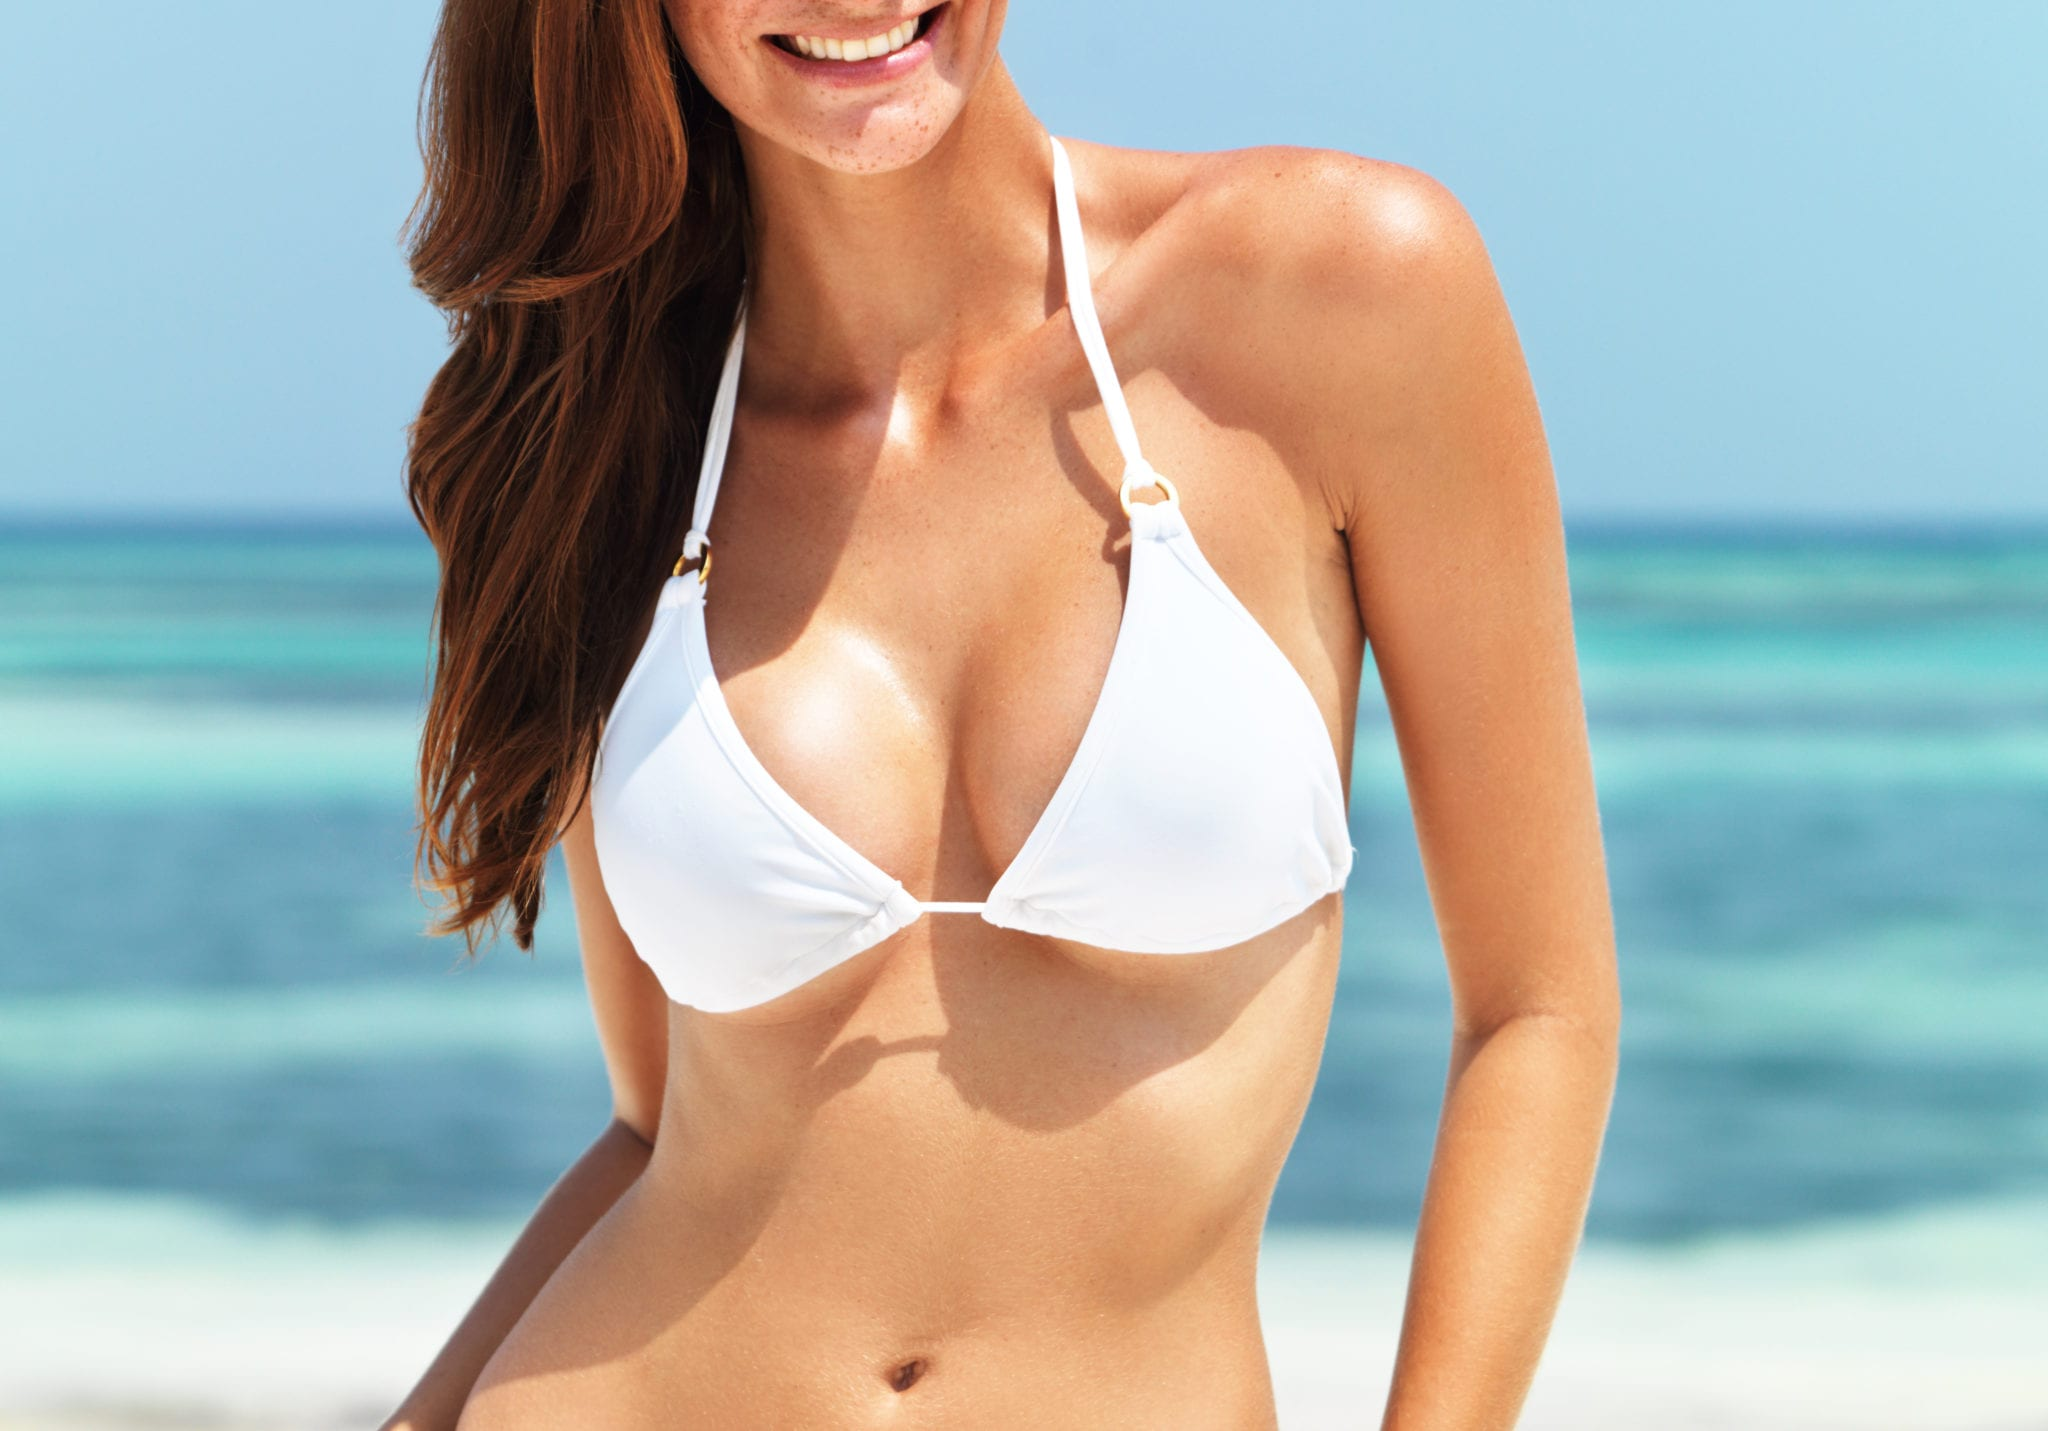 Dr Jeremy L Wilson Guide Sizes To Consider For The Breast Augmentation - August Facebook-1465